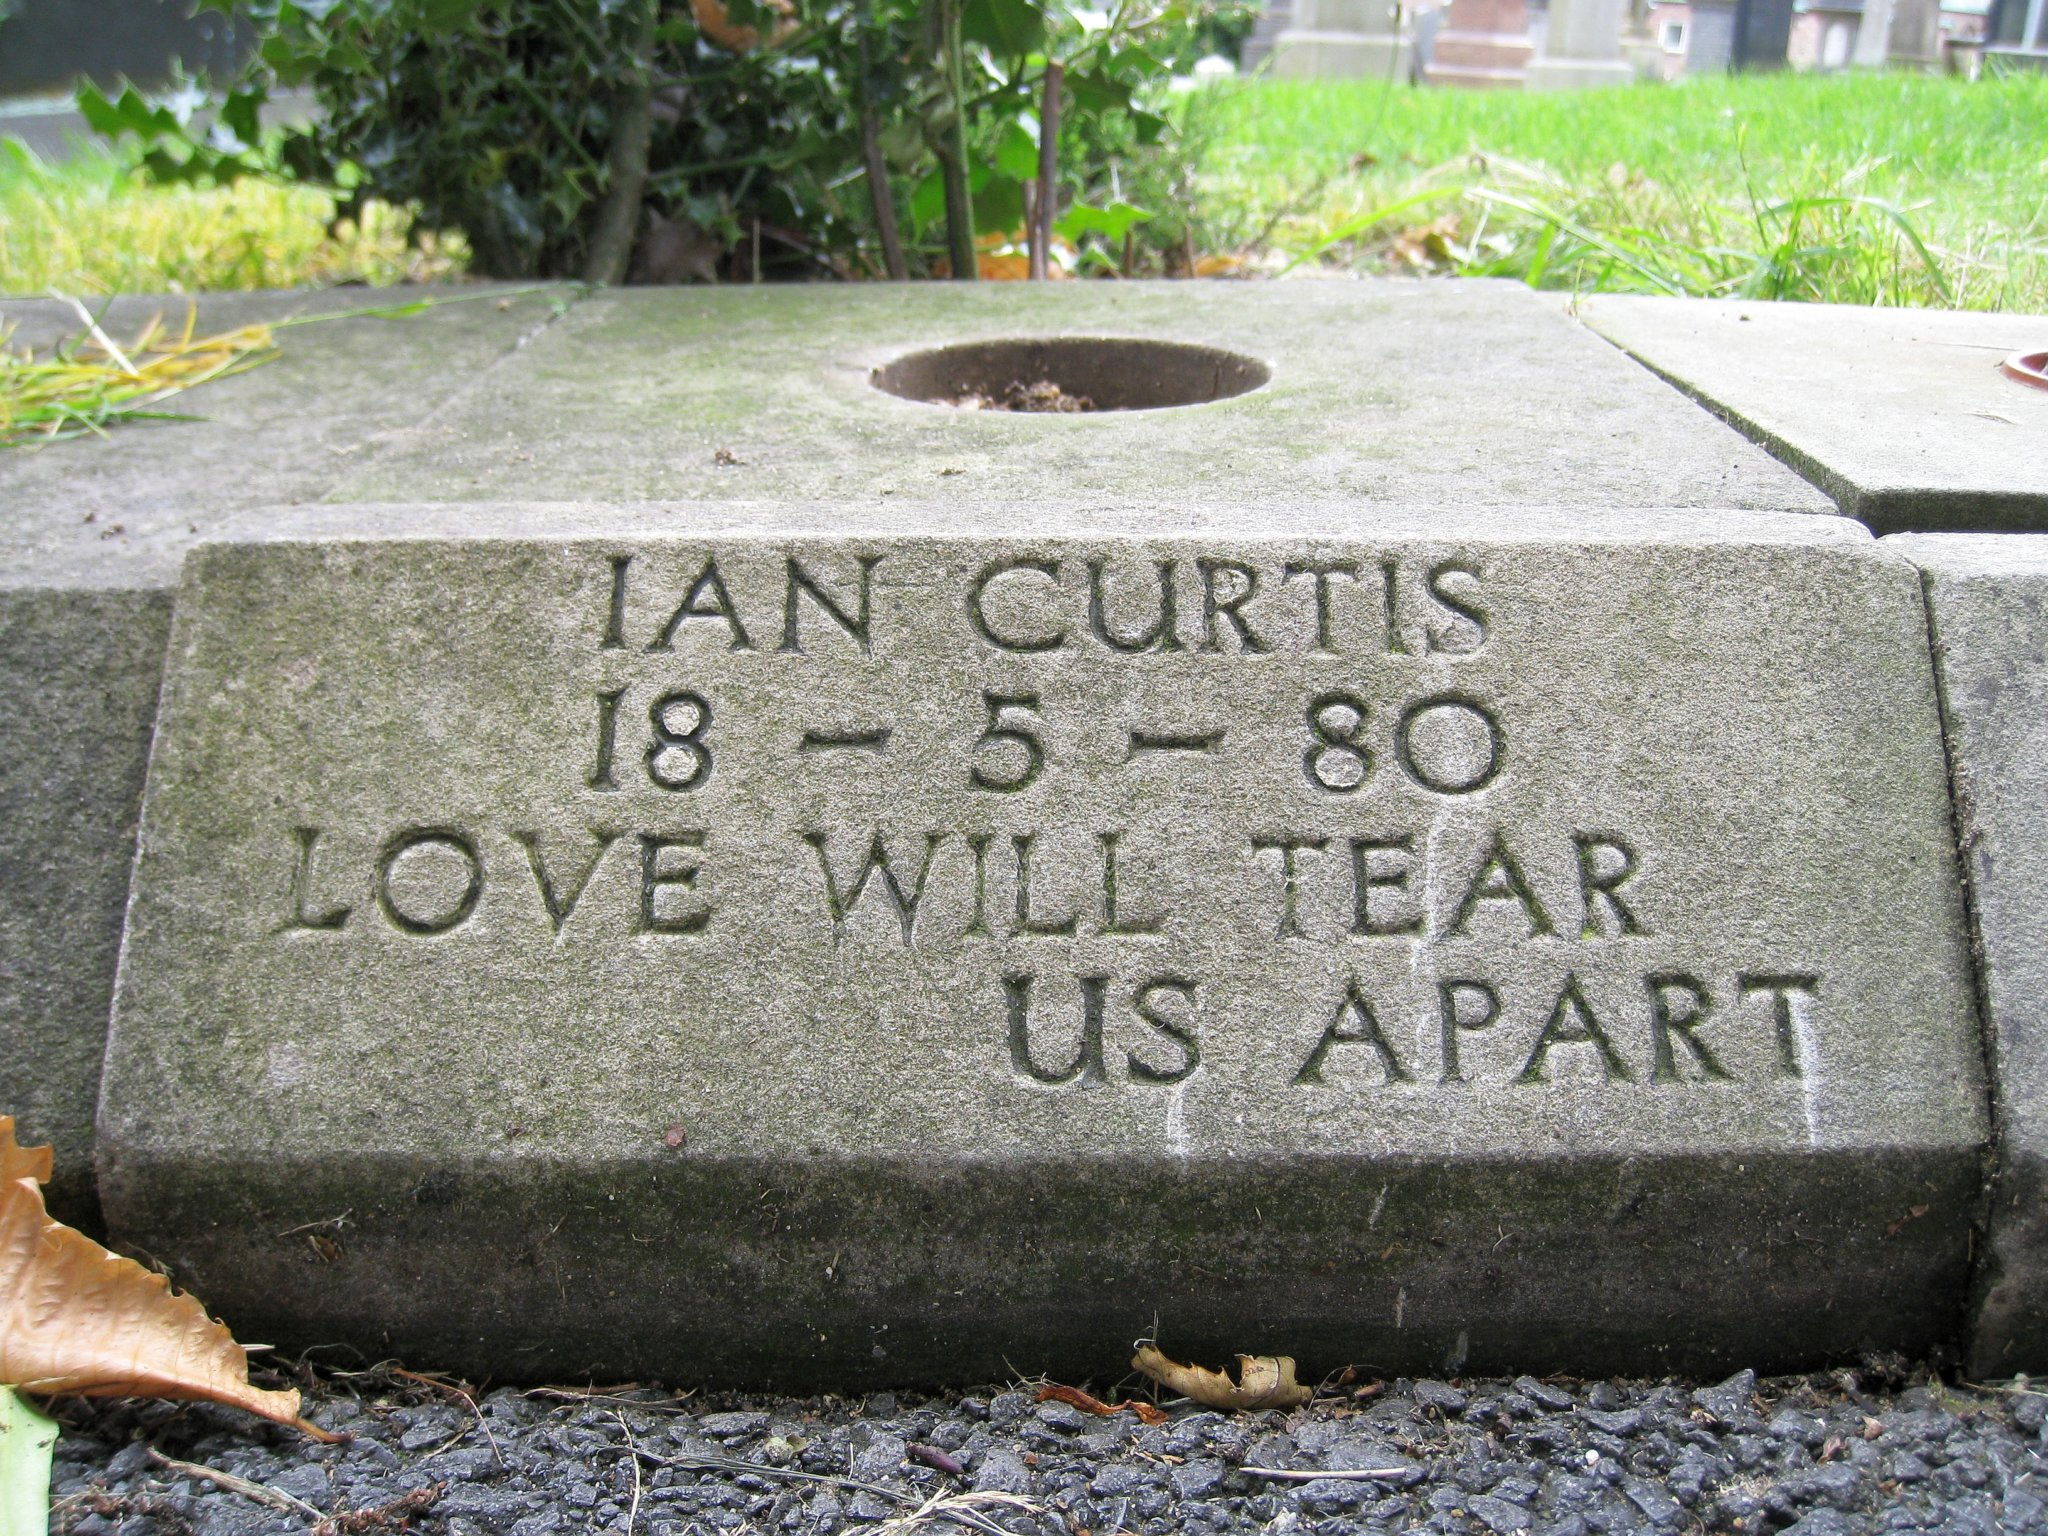 Ian Curtis memorial plaque, Macclesfield Cemetery